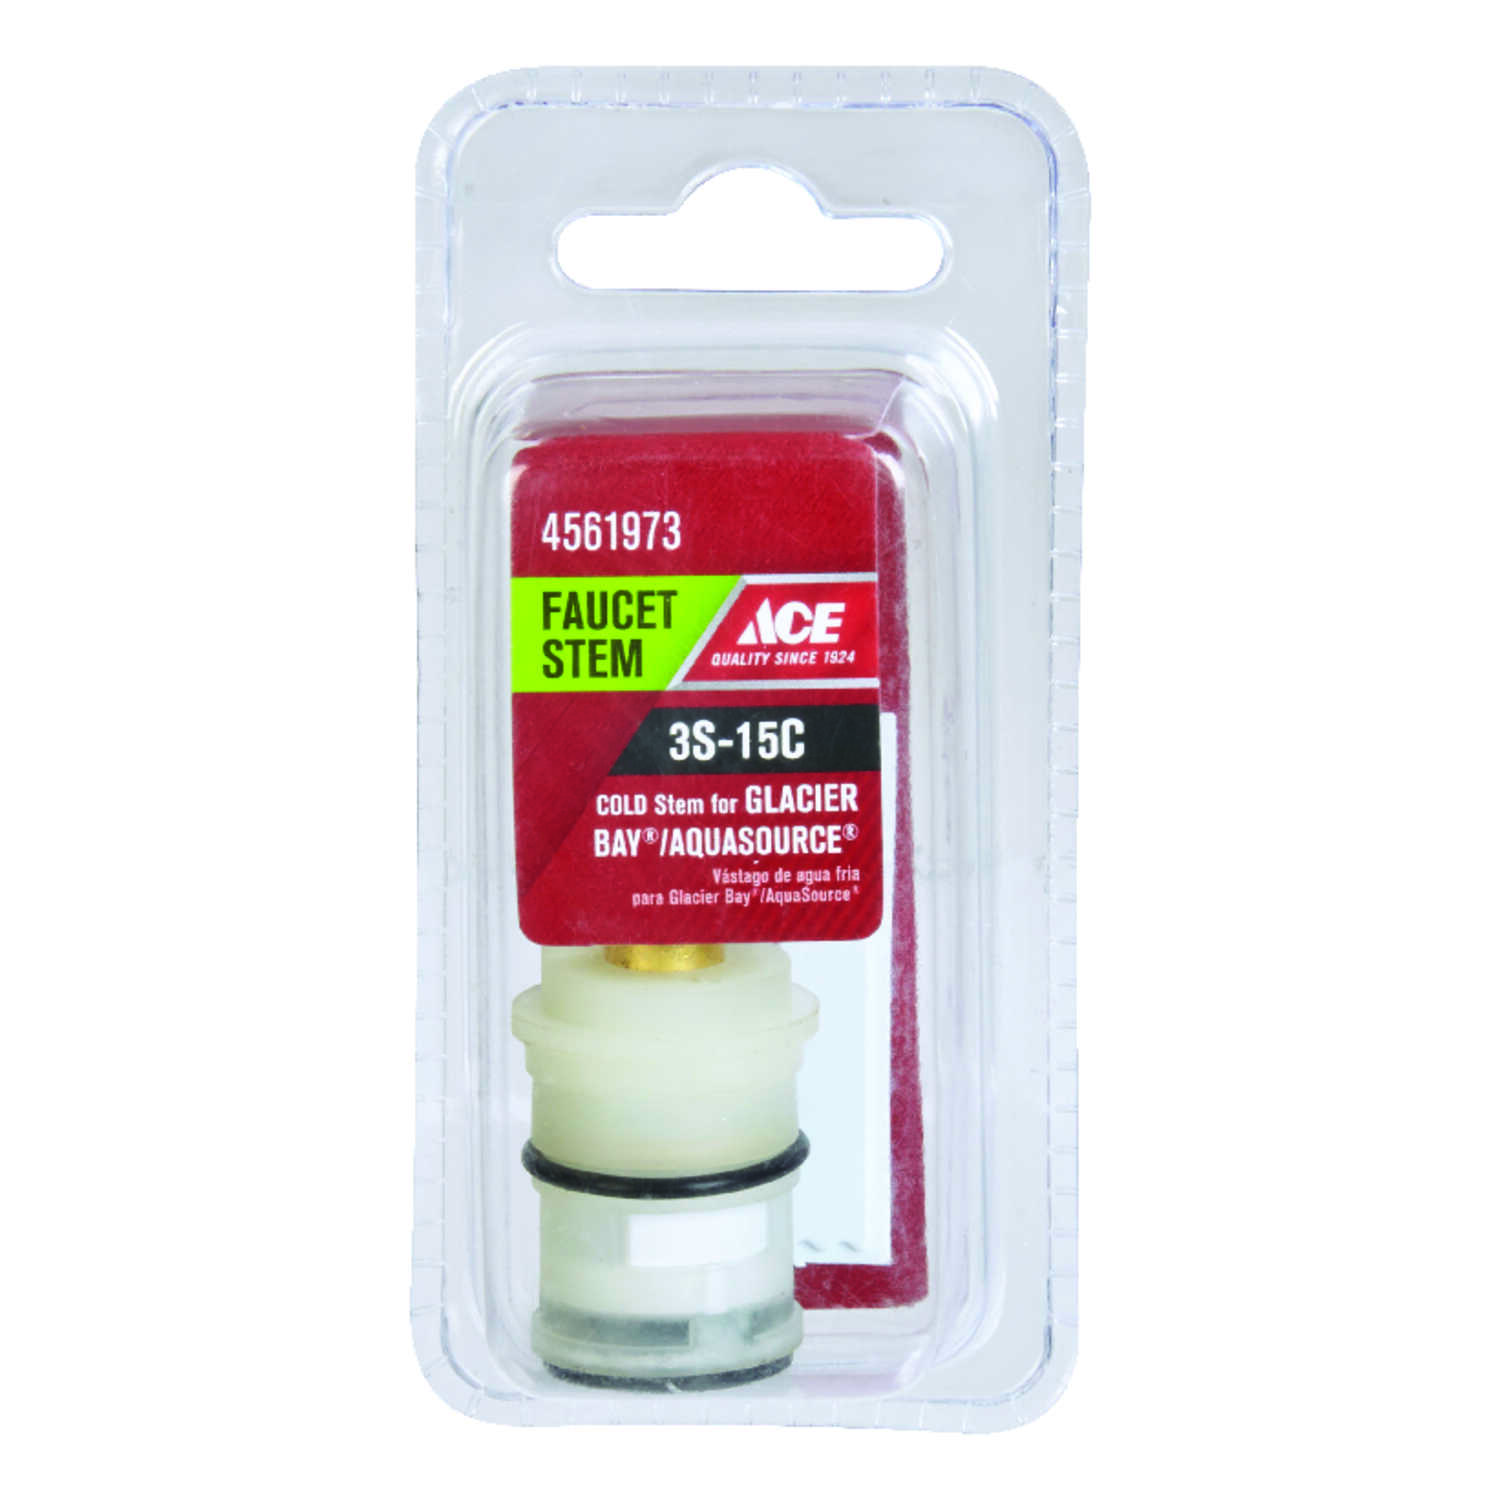 Ace  Cold  3S-15C  Faucet Stem  For Glacier Bay & Aquasource